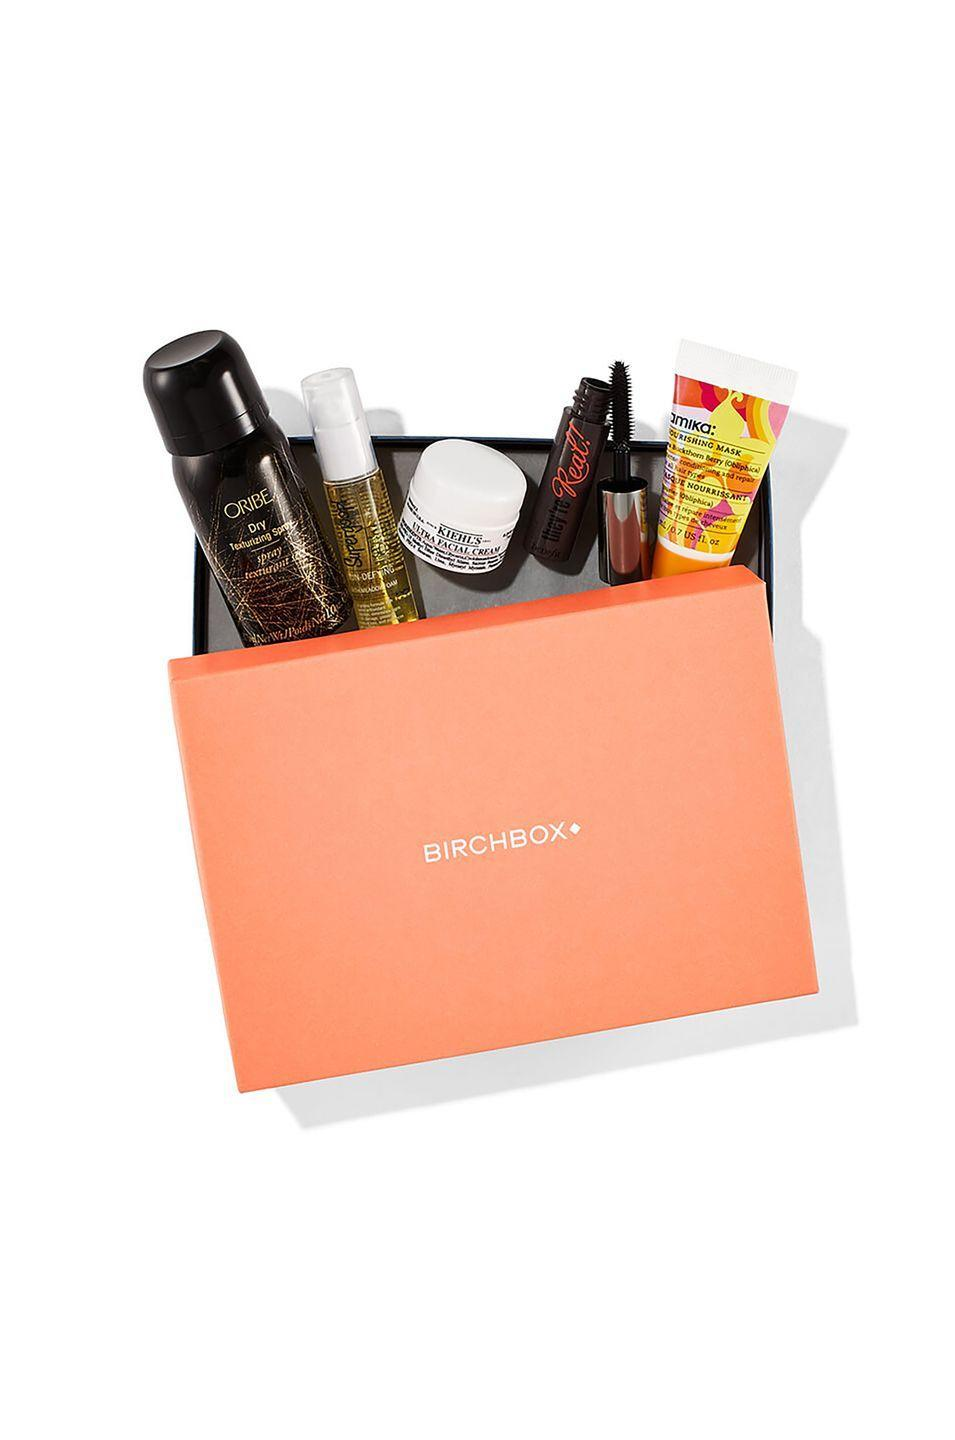 """<p>If mom loves trying new beauty products, a <a href=""""https://www.birchbox.com"""" rel=""""nofollow noopener"""" target=""""_blank"""" data-ylk=""""slk:Birchbox subscription"""" class=""""link rapid-noclick-resp"""">Birchbox subscription</a> will get her five new sample-size products each month.<br></p><p><a class=""""link rapid-noclick-resp"""" href=""""https://go.redirectingat.com?id=74968X1596630&url=https%3A%2F%2Fwww.birchbox.com%2F&sref=https%3A%2F%2Fwww.countryliving.com%2Fshopping%2Fgifts%2Fg19663932%2Fmothers-day-gift-baskets%2F"""" rel=""""nofollow noopener"""" target=""""_blank"""" data-ylk=""""slk:SHOP NOW"""">SHOP NOW</a></p>"""